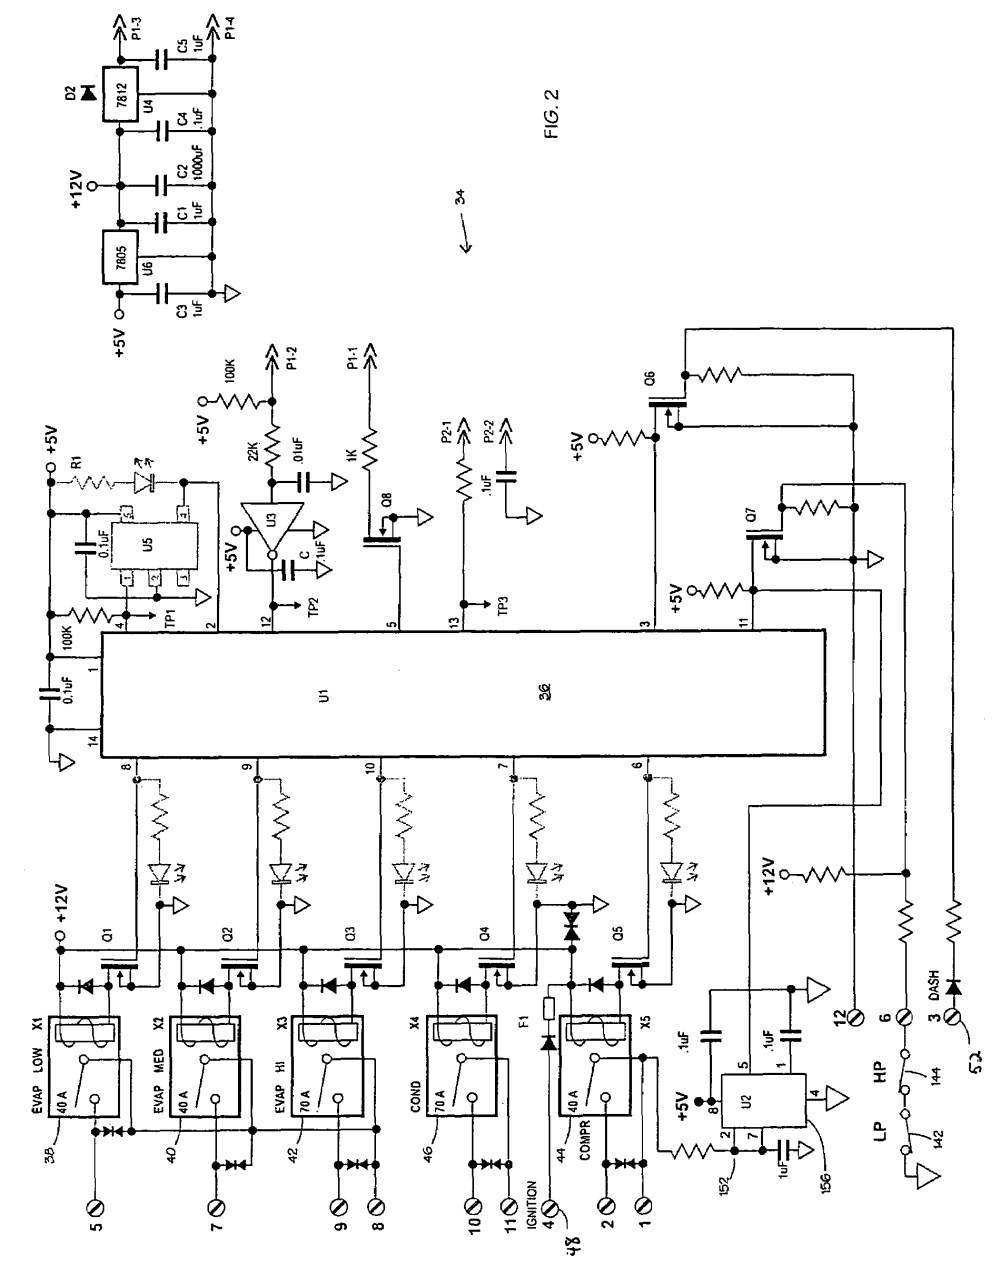 medium resolution of patente us7475559 electronic vehicle climate control car air conditioning wiring diagram pdf car air conditioning wiring diagram